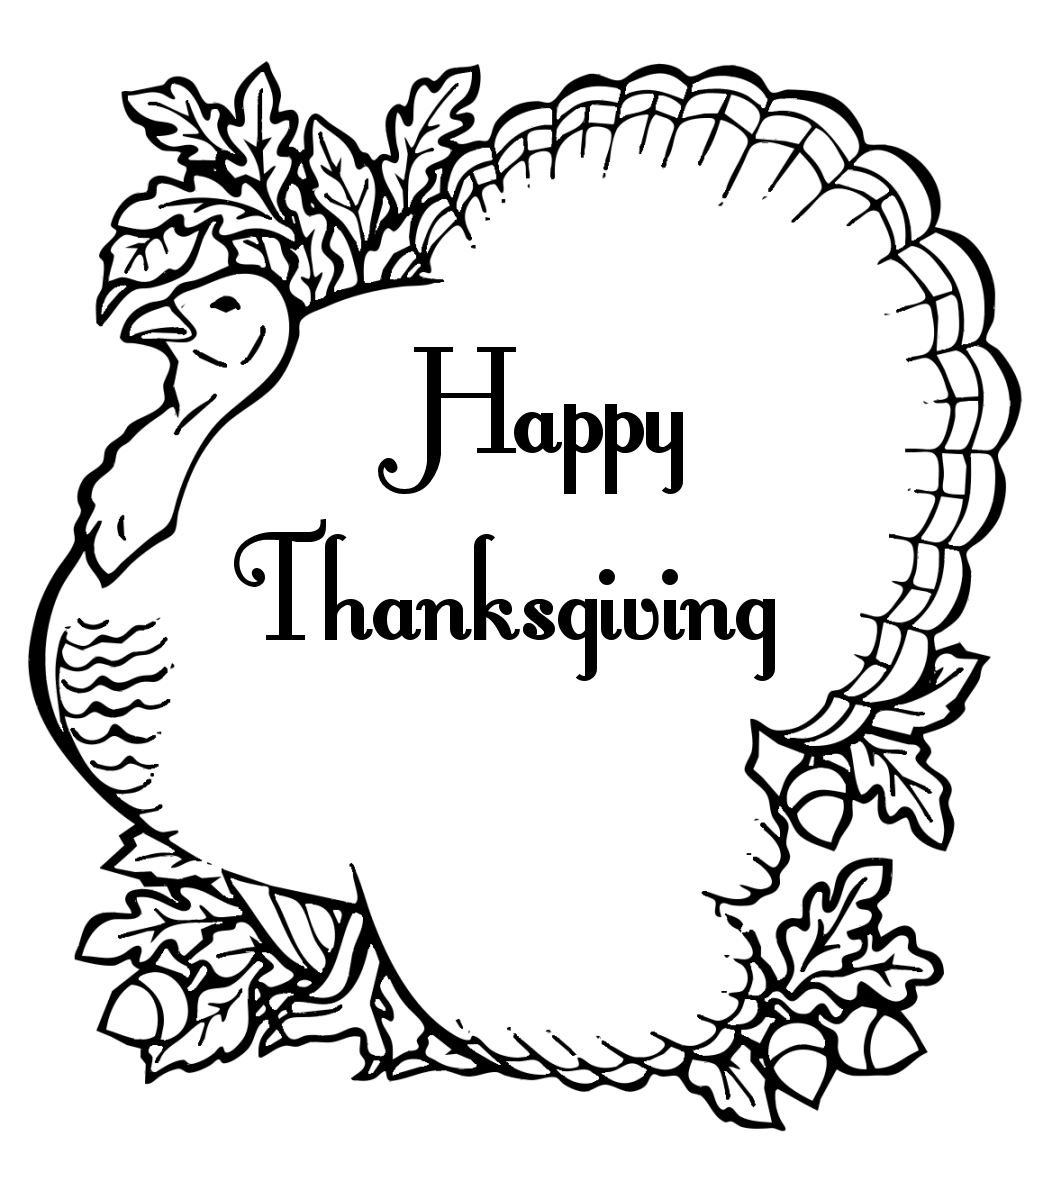 Coloring pages turkey coloring pages free and printable for Thanksgiving coloring page free